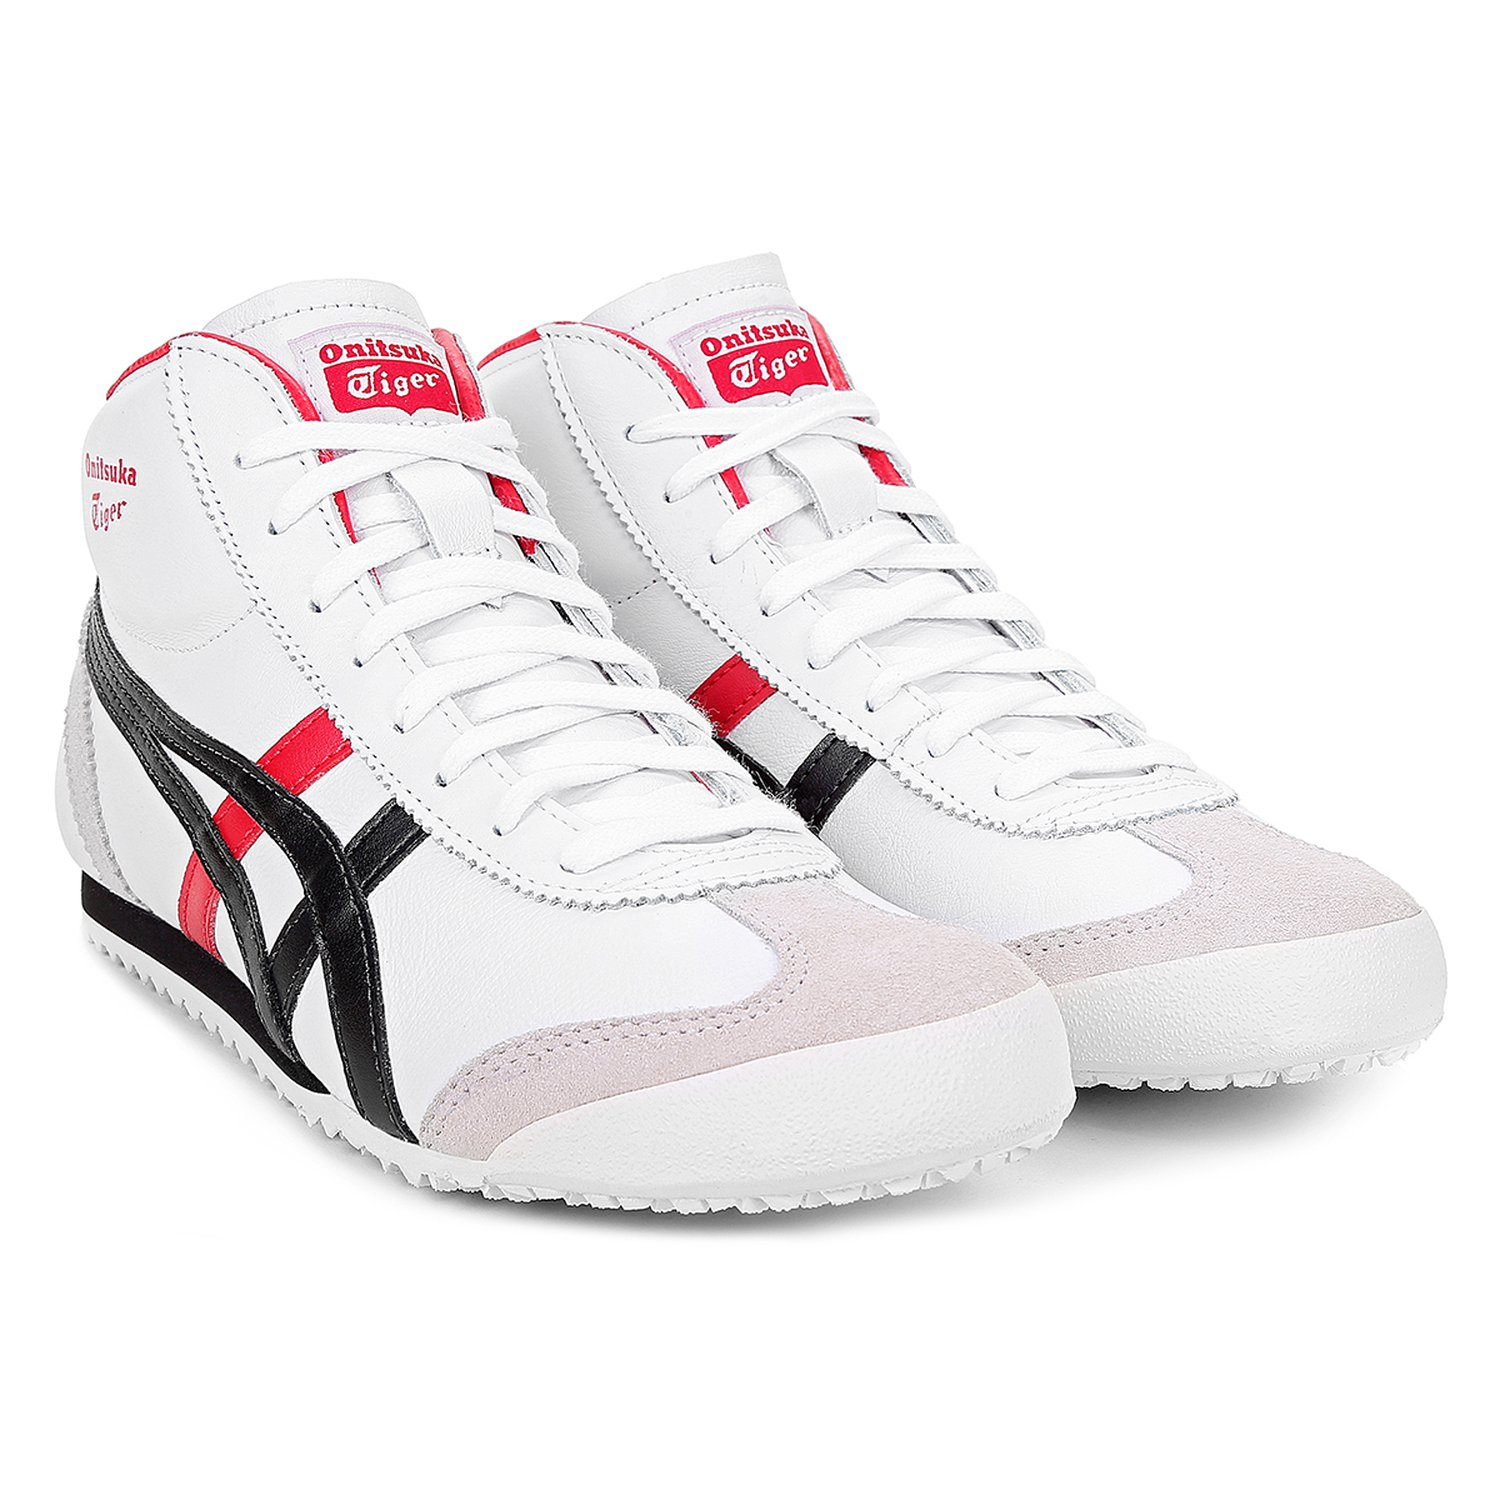 new arrival d19ae 618ee Tênis Onitsuka Tiger Mexico 66 Mid Runner